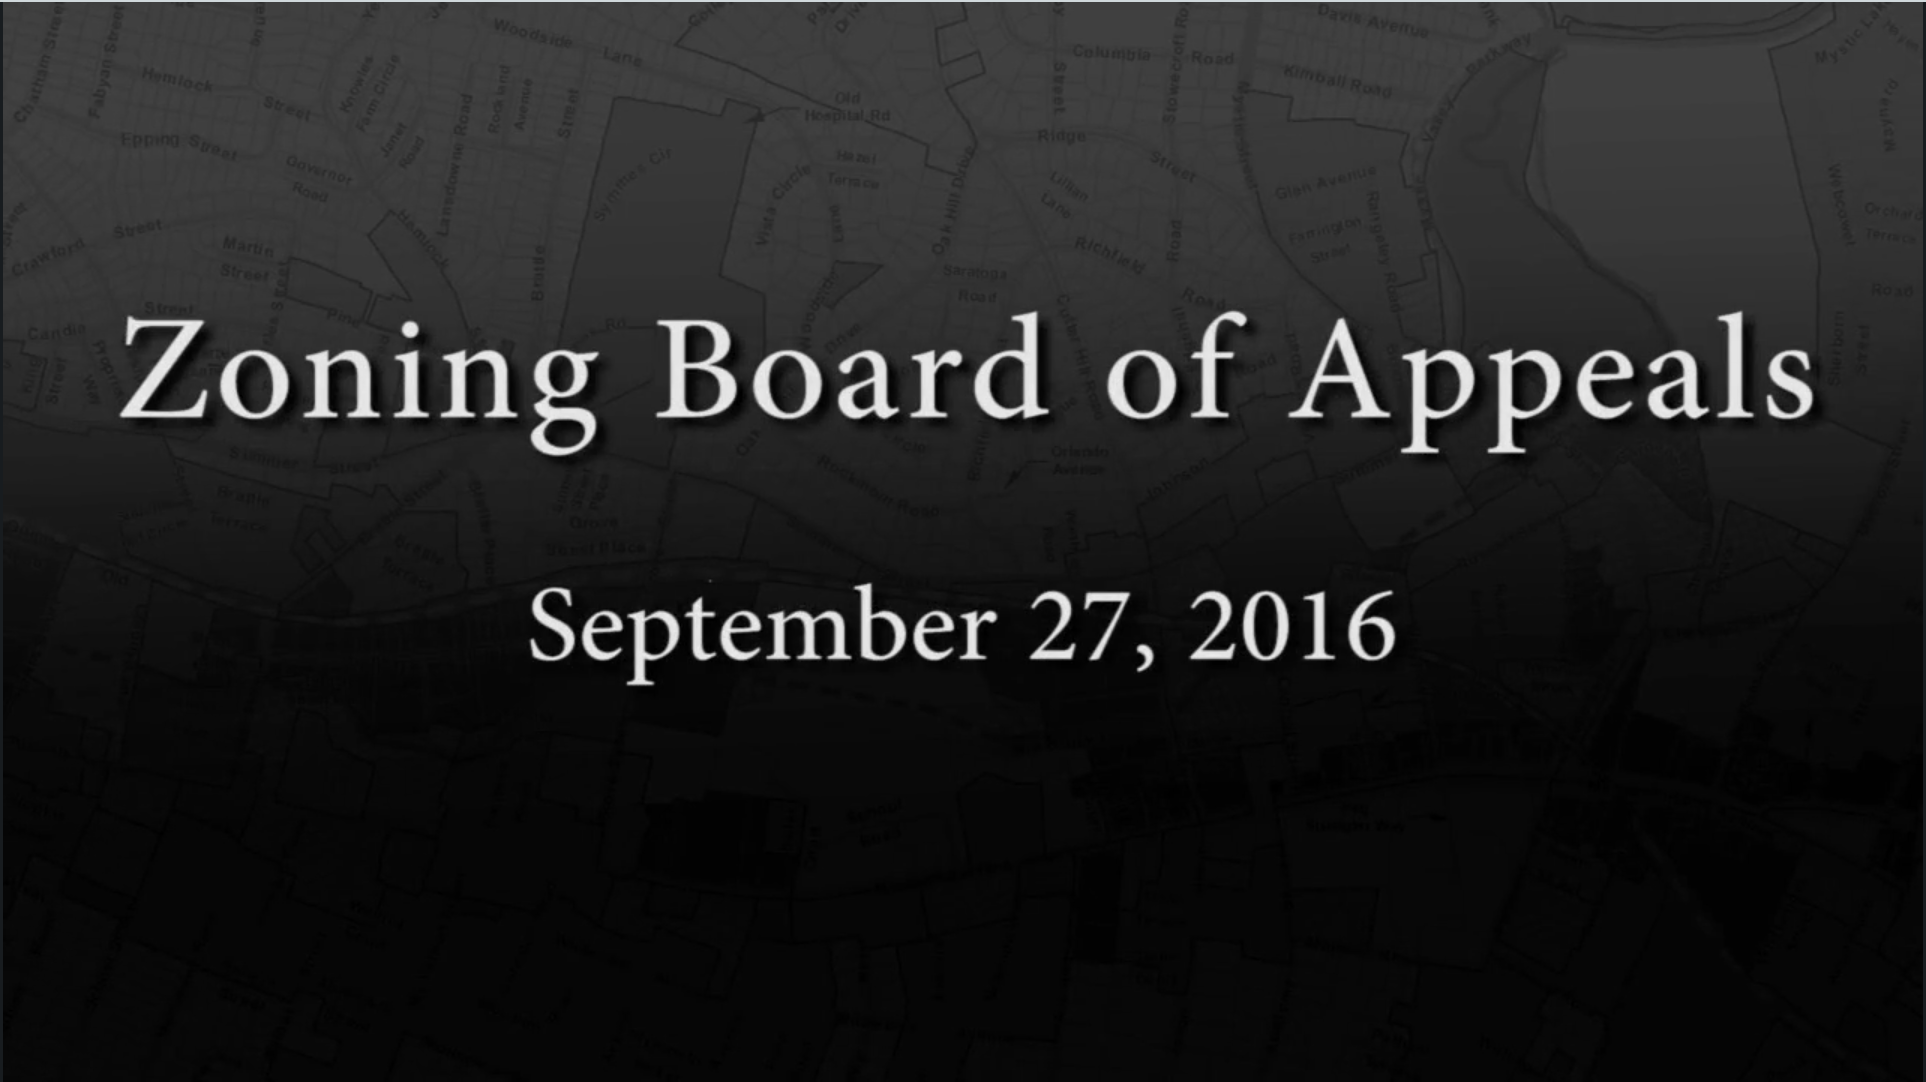 Zoning Board of Appeals Meeting – September 27, 2016